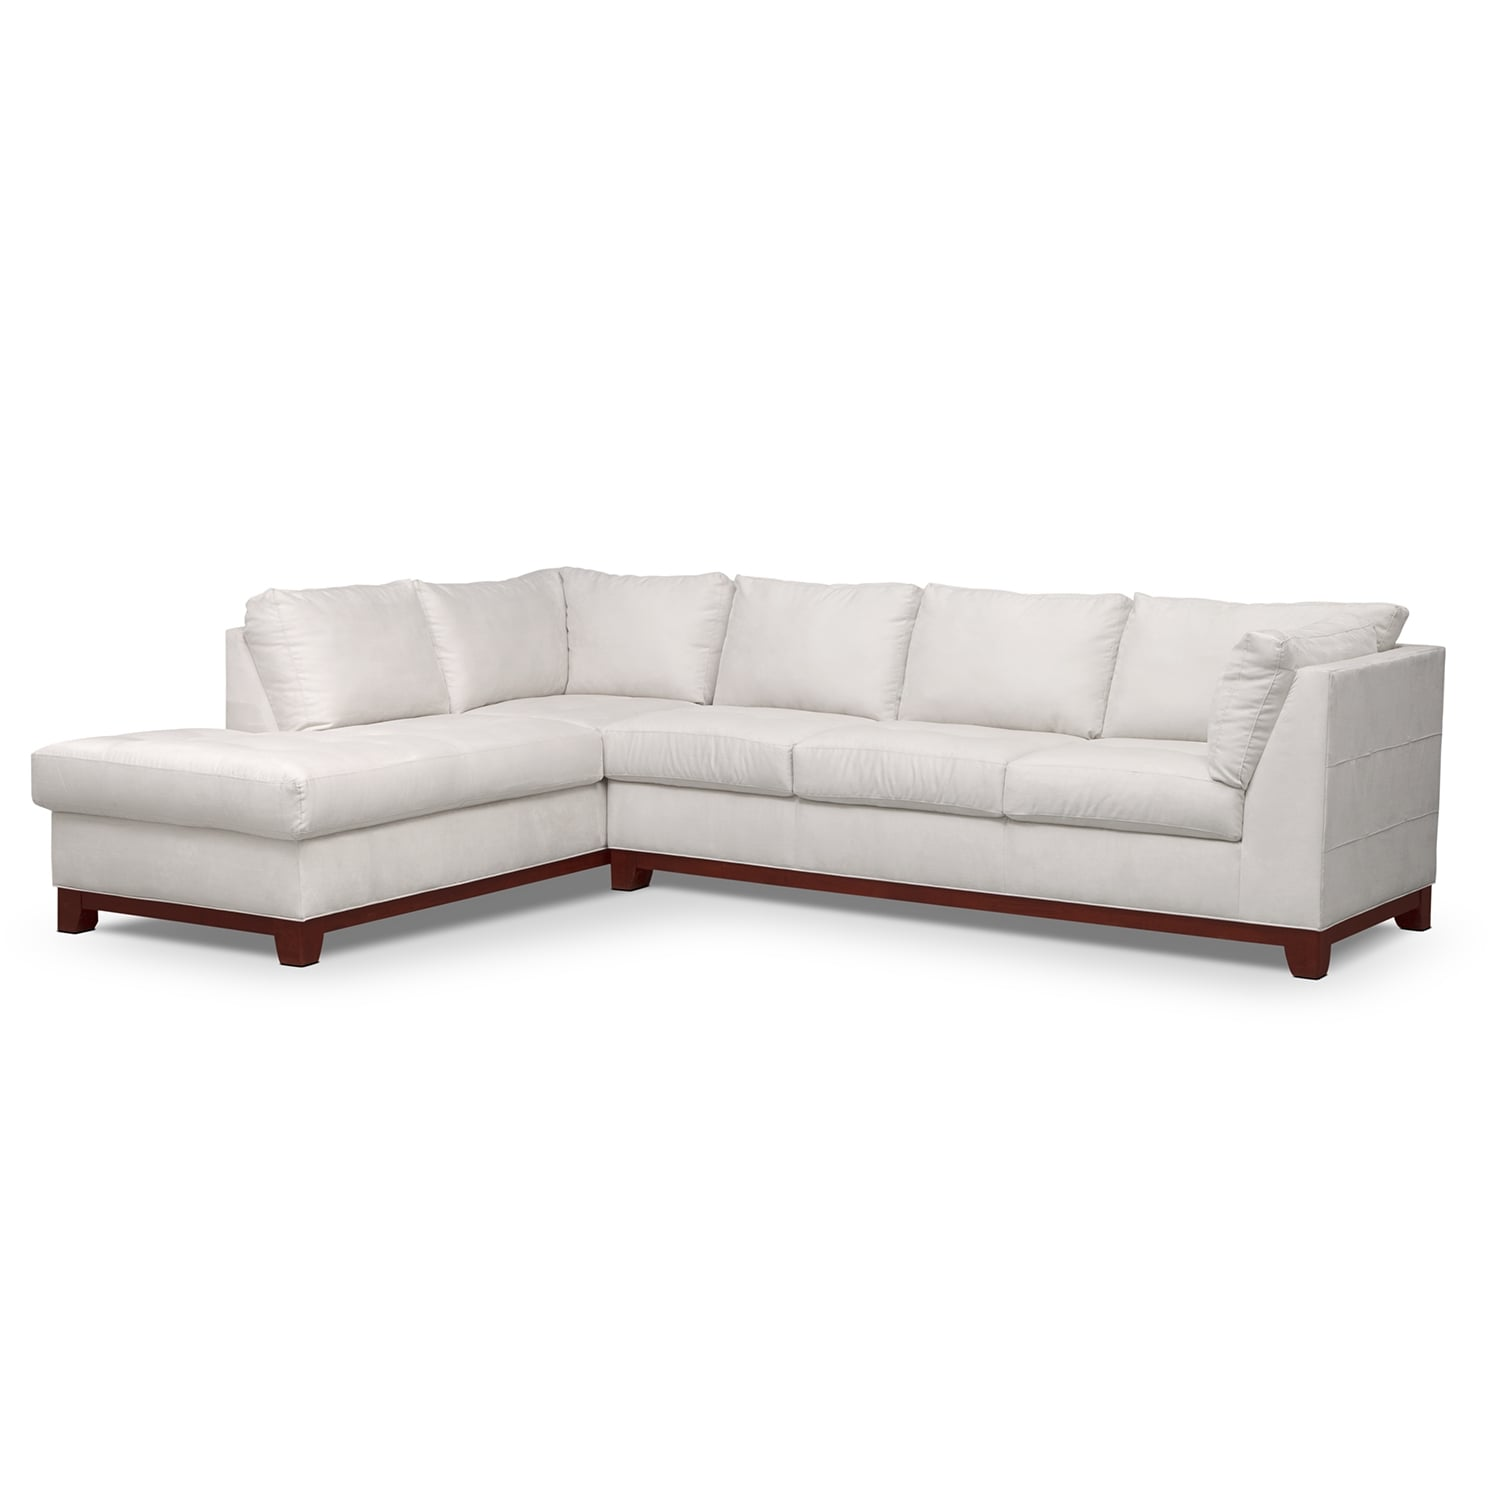 Soho 2 Piece Sectional with Left Facing Chaise Cement